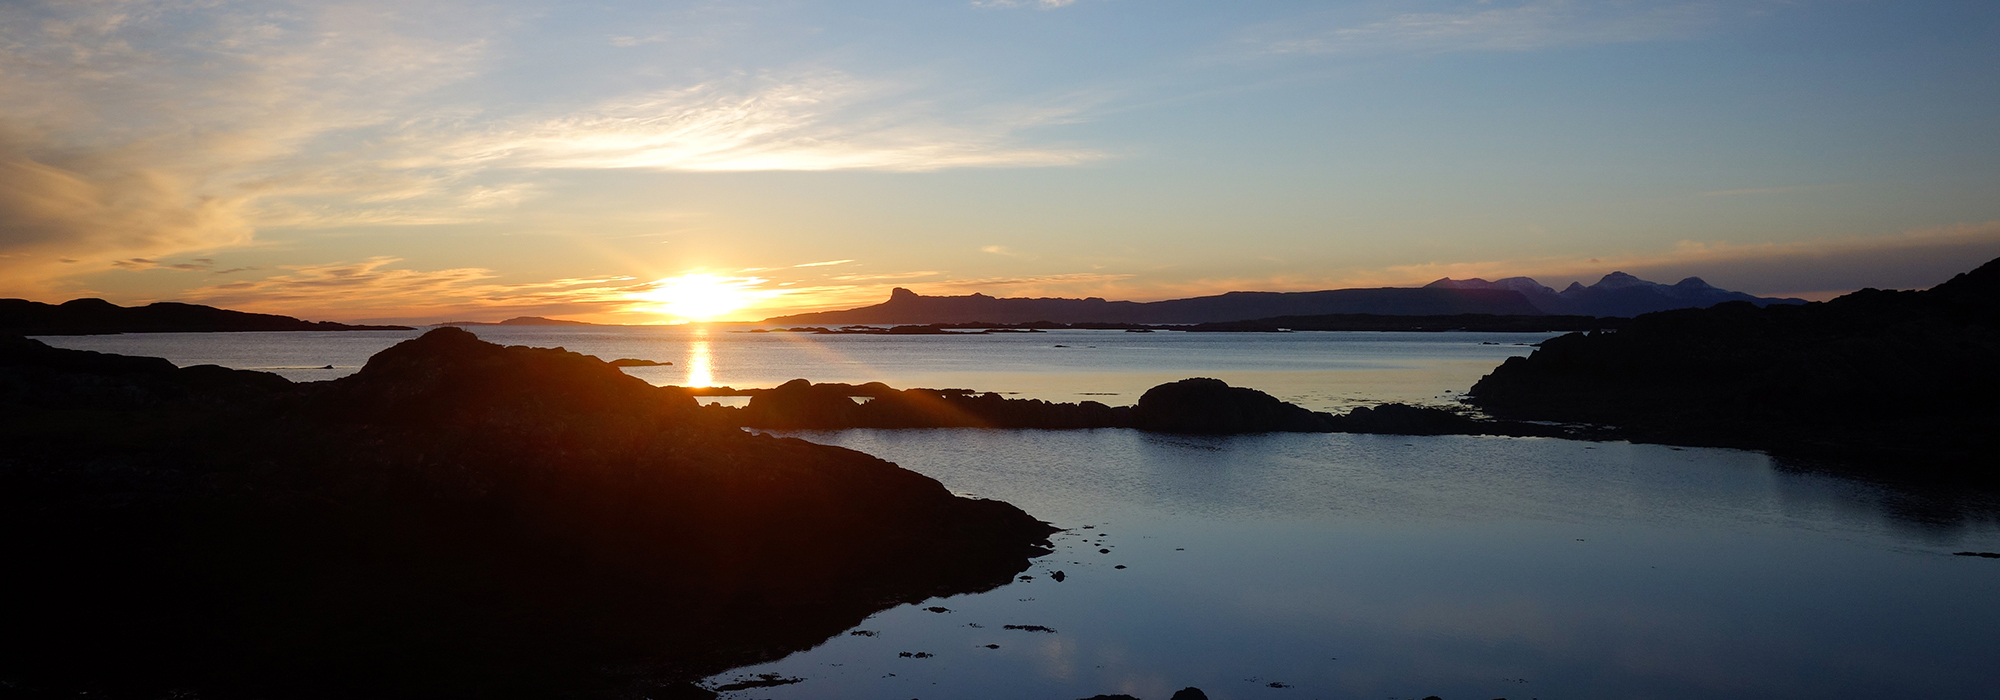 Rhu-sunset-land-sea-&-islands-centre-d-500